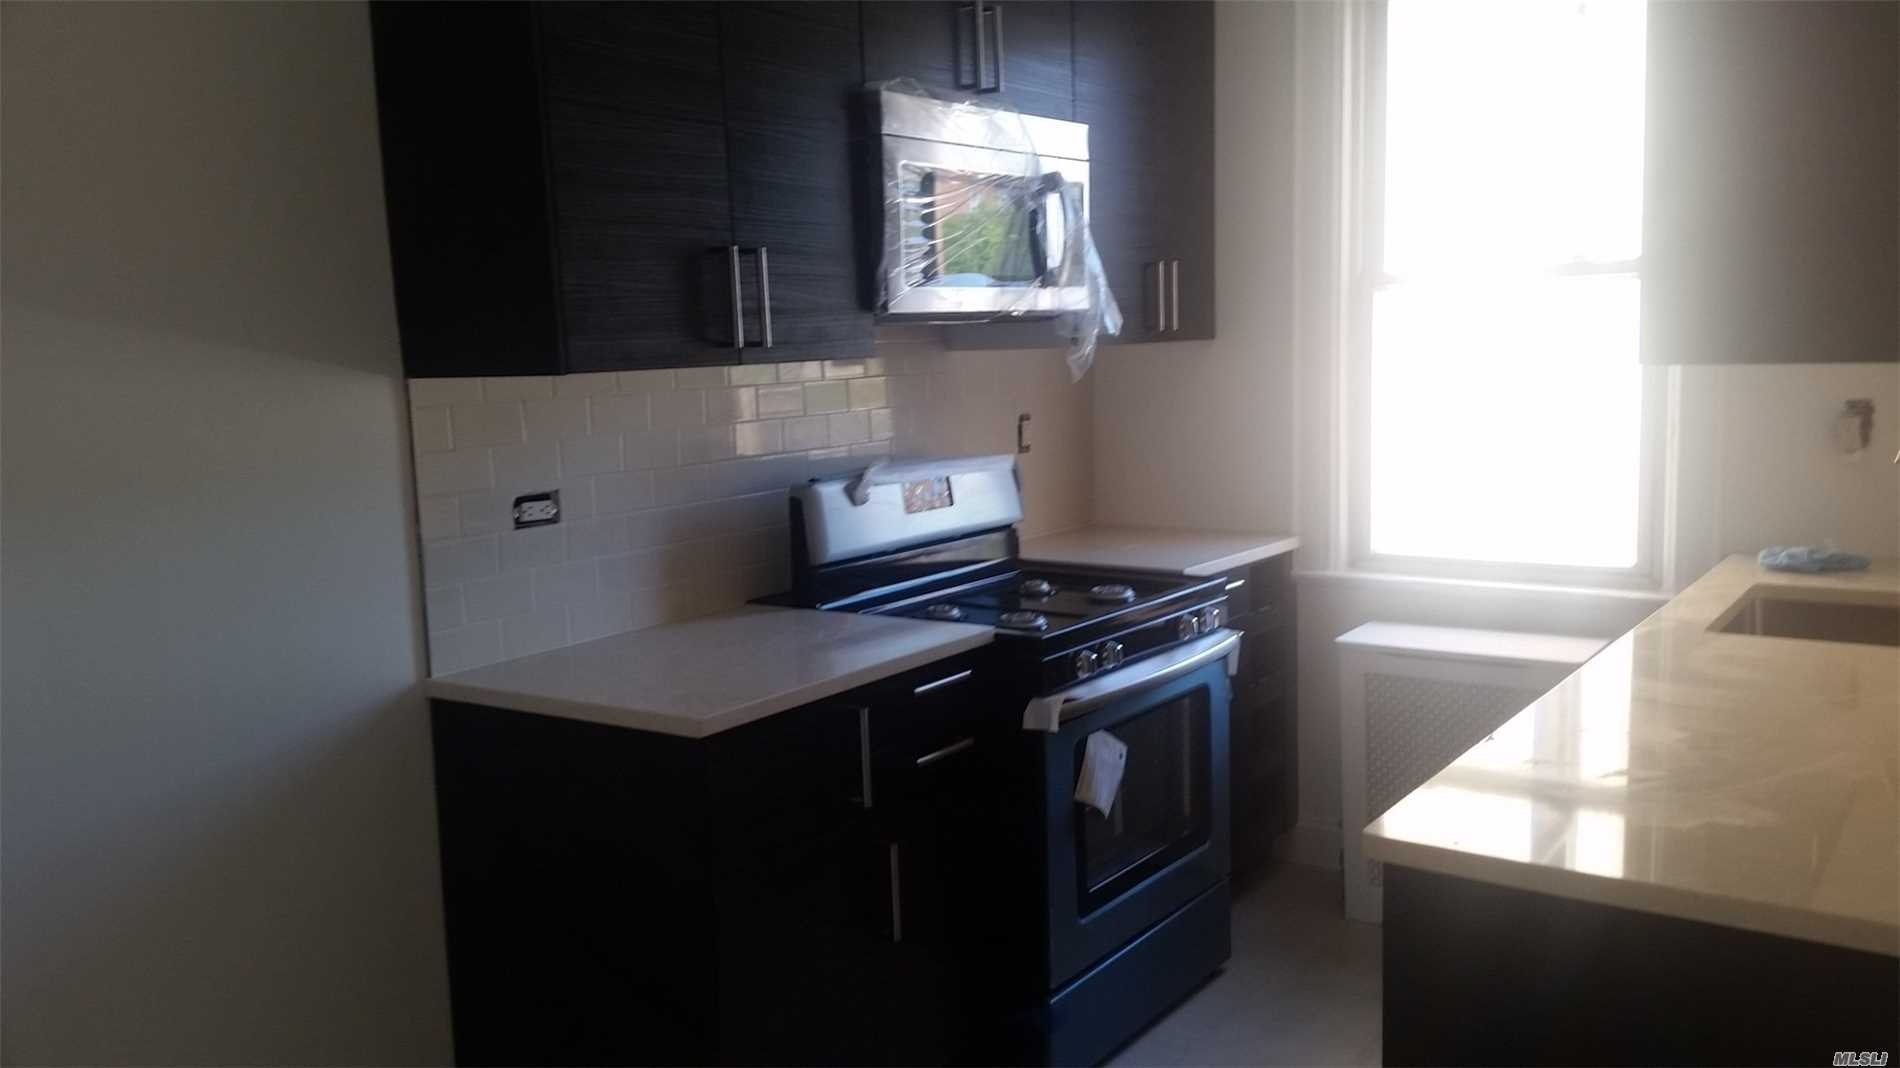 2 Bedroom Apartment, Hard Wood Floors, Eat In Kitchen And Stainless Steel Appliances